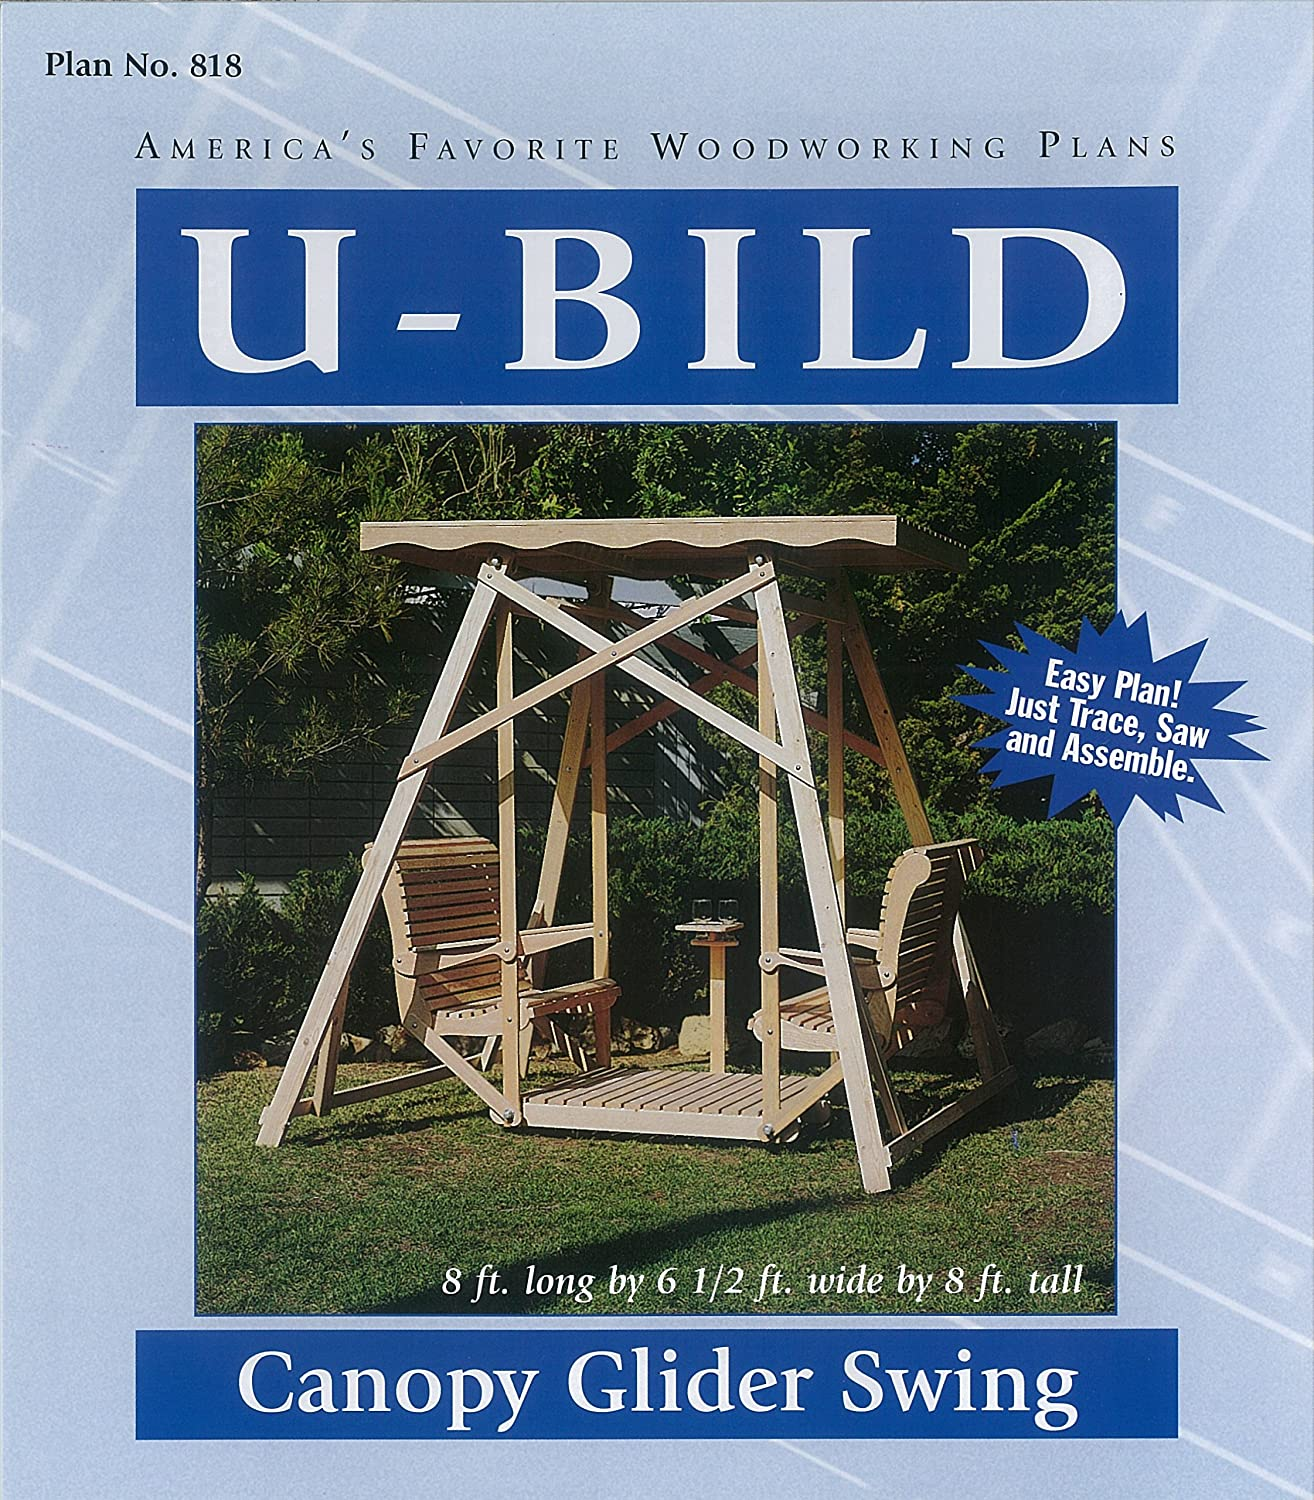 U-Bild 818 Canopy Glider Swing Project Plan - Outdoor Furniture Woodworking Project Plans - Amazon.com  sc 1 st  Amazon.com & U-Bild 818 Canopy Glider Swing Project Plan - Outdoor Furniture ...